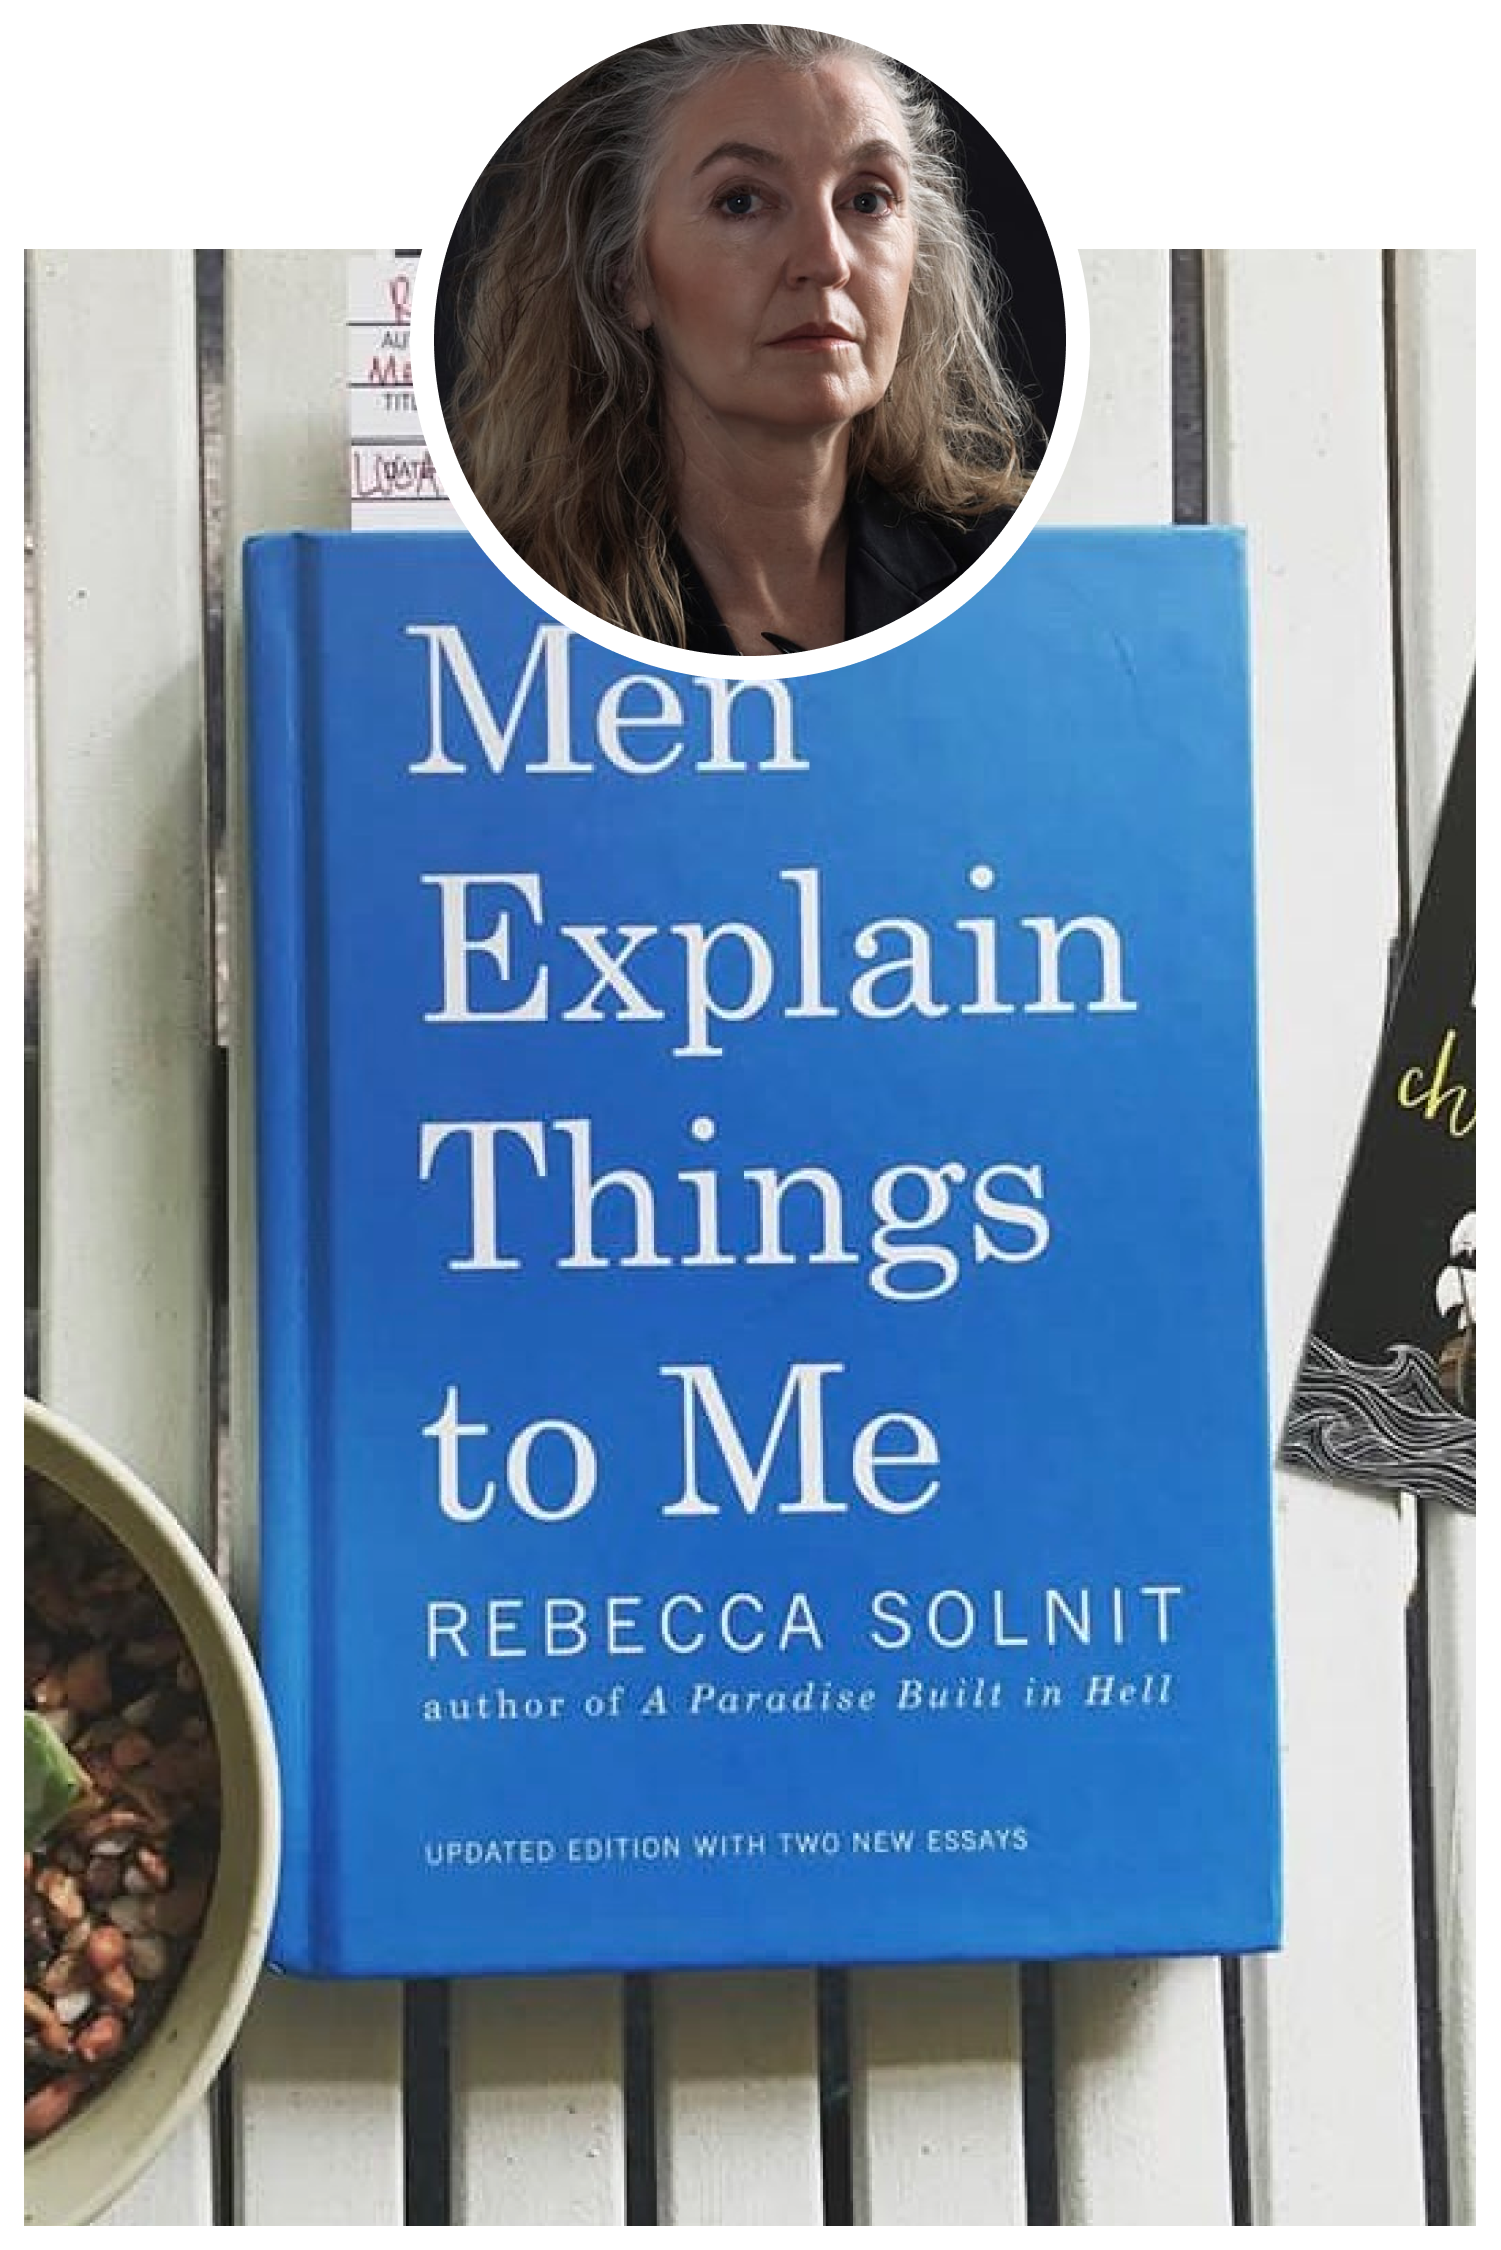 Men Explain Things to Me by Rebecca